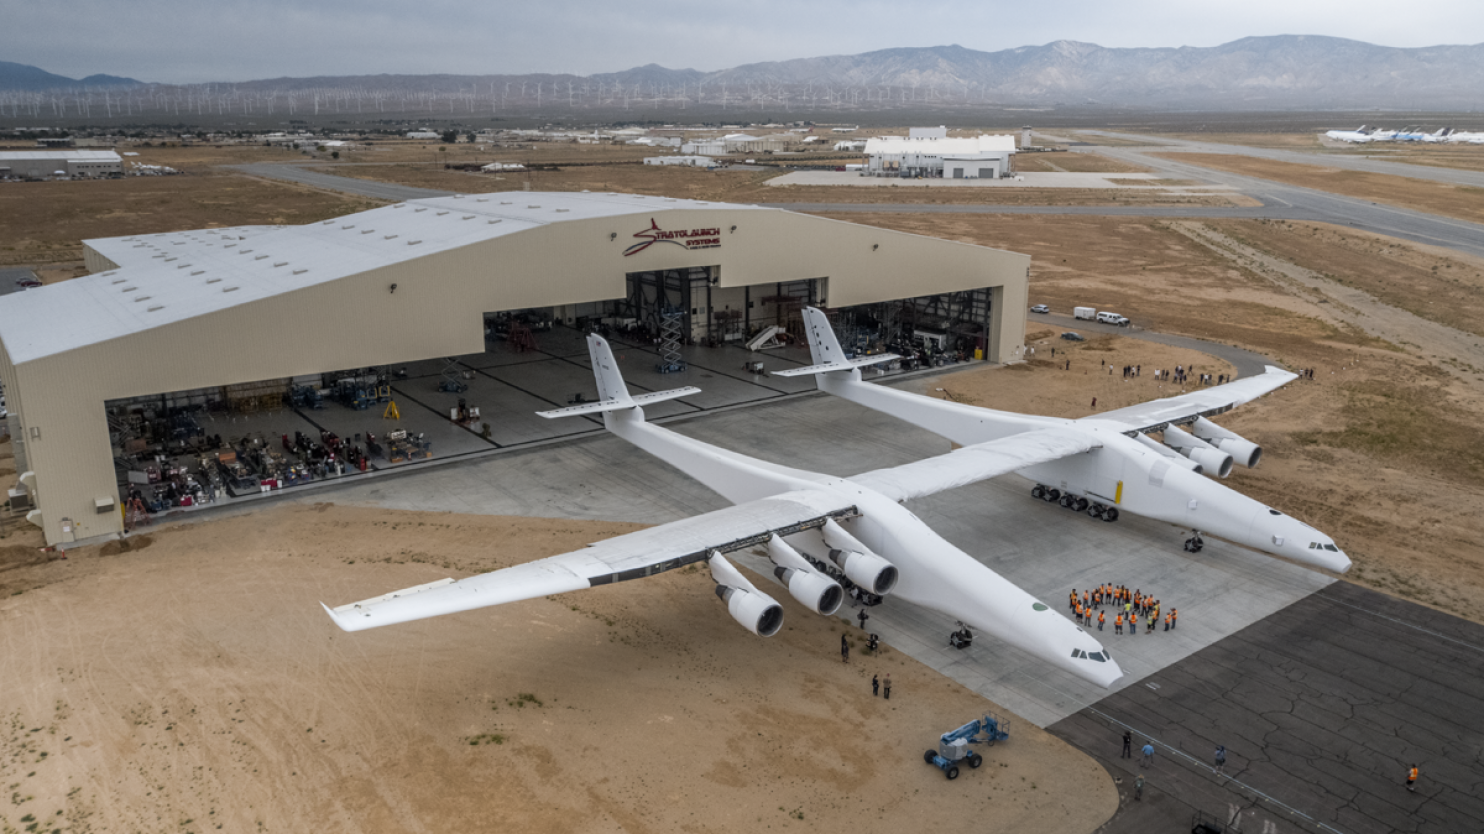 Paul Allen Shows Off The World's Largest Aeroplane For The First Time